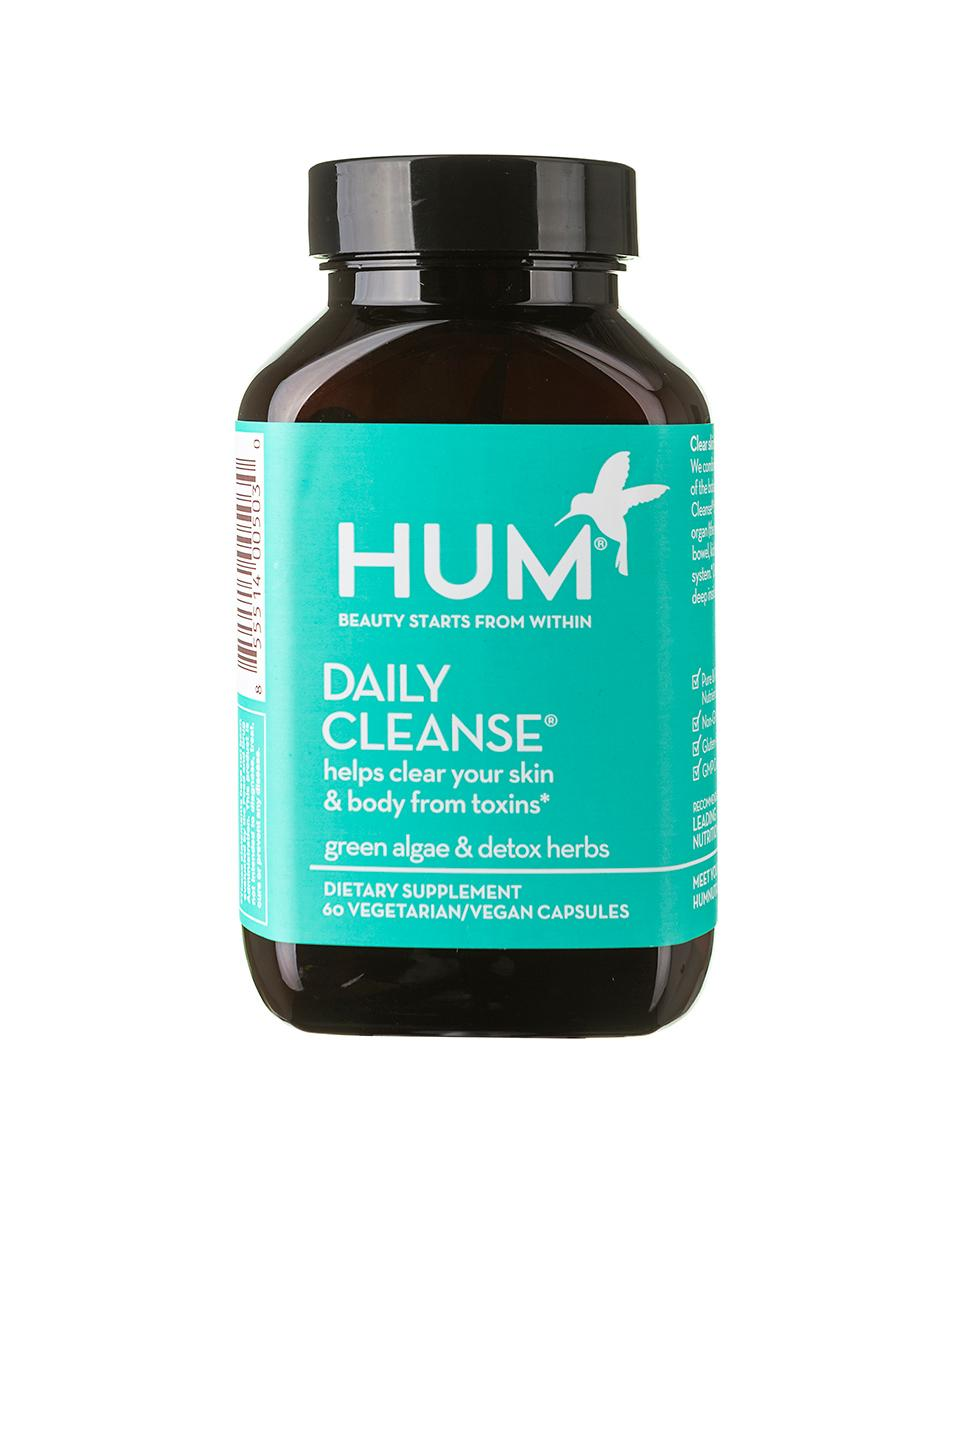 Hum Nutrition Daily Cleanse Clear Skin And Body Detox Supplement In N,a